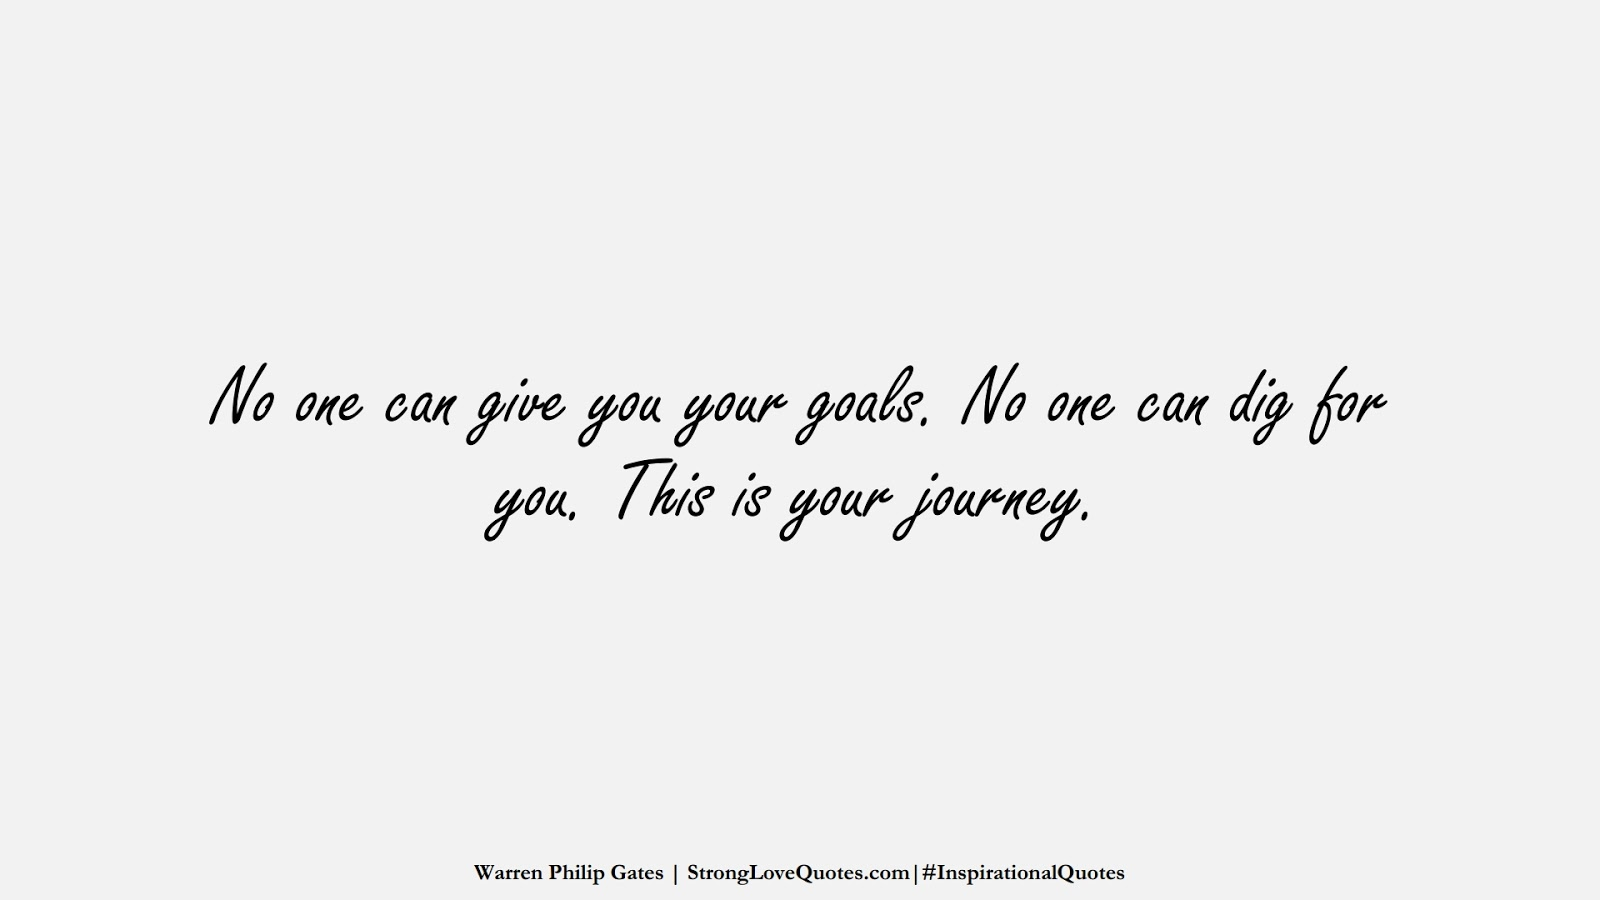 No one can give you your goals. No one can dig for you. This is your journey. (Warren Philip Gates);  #InspirationalQuotes